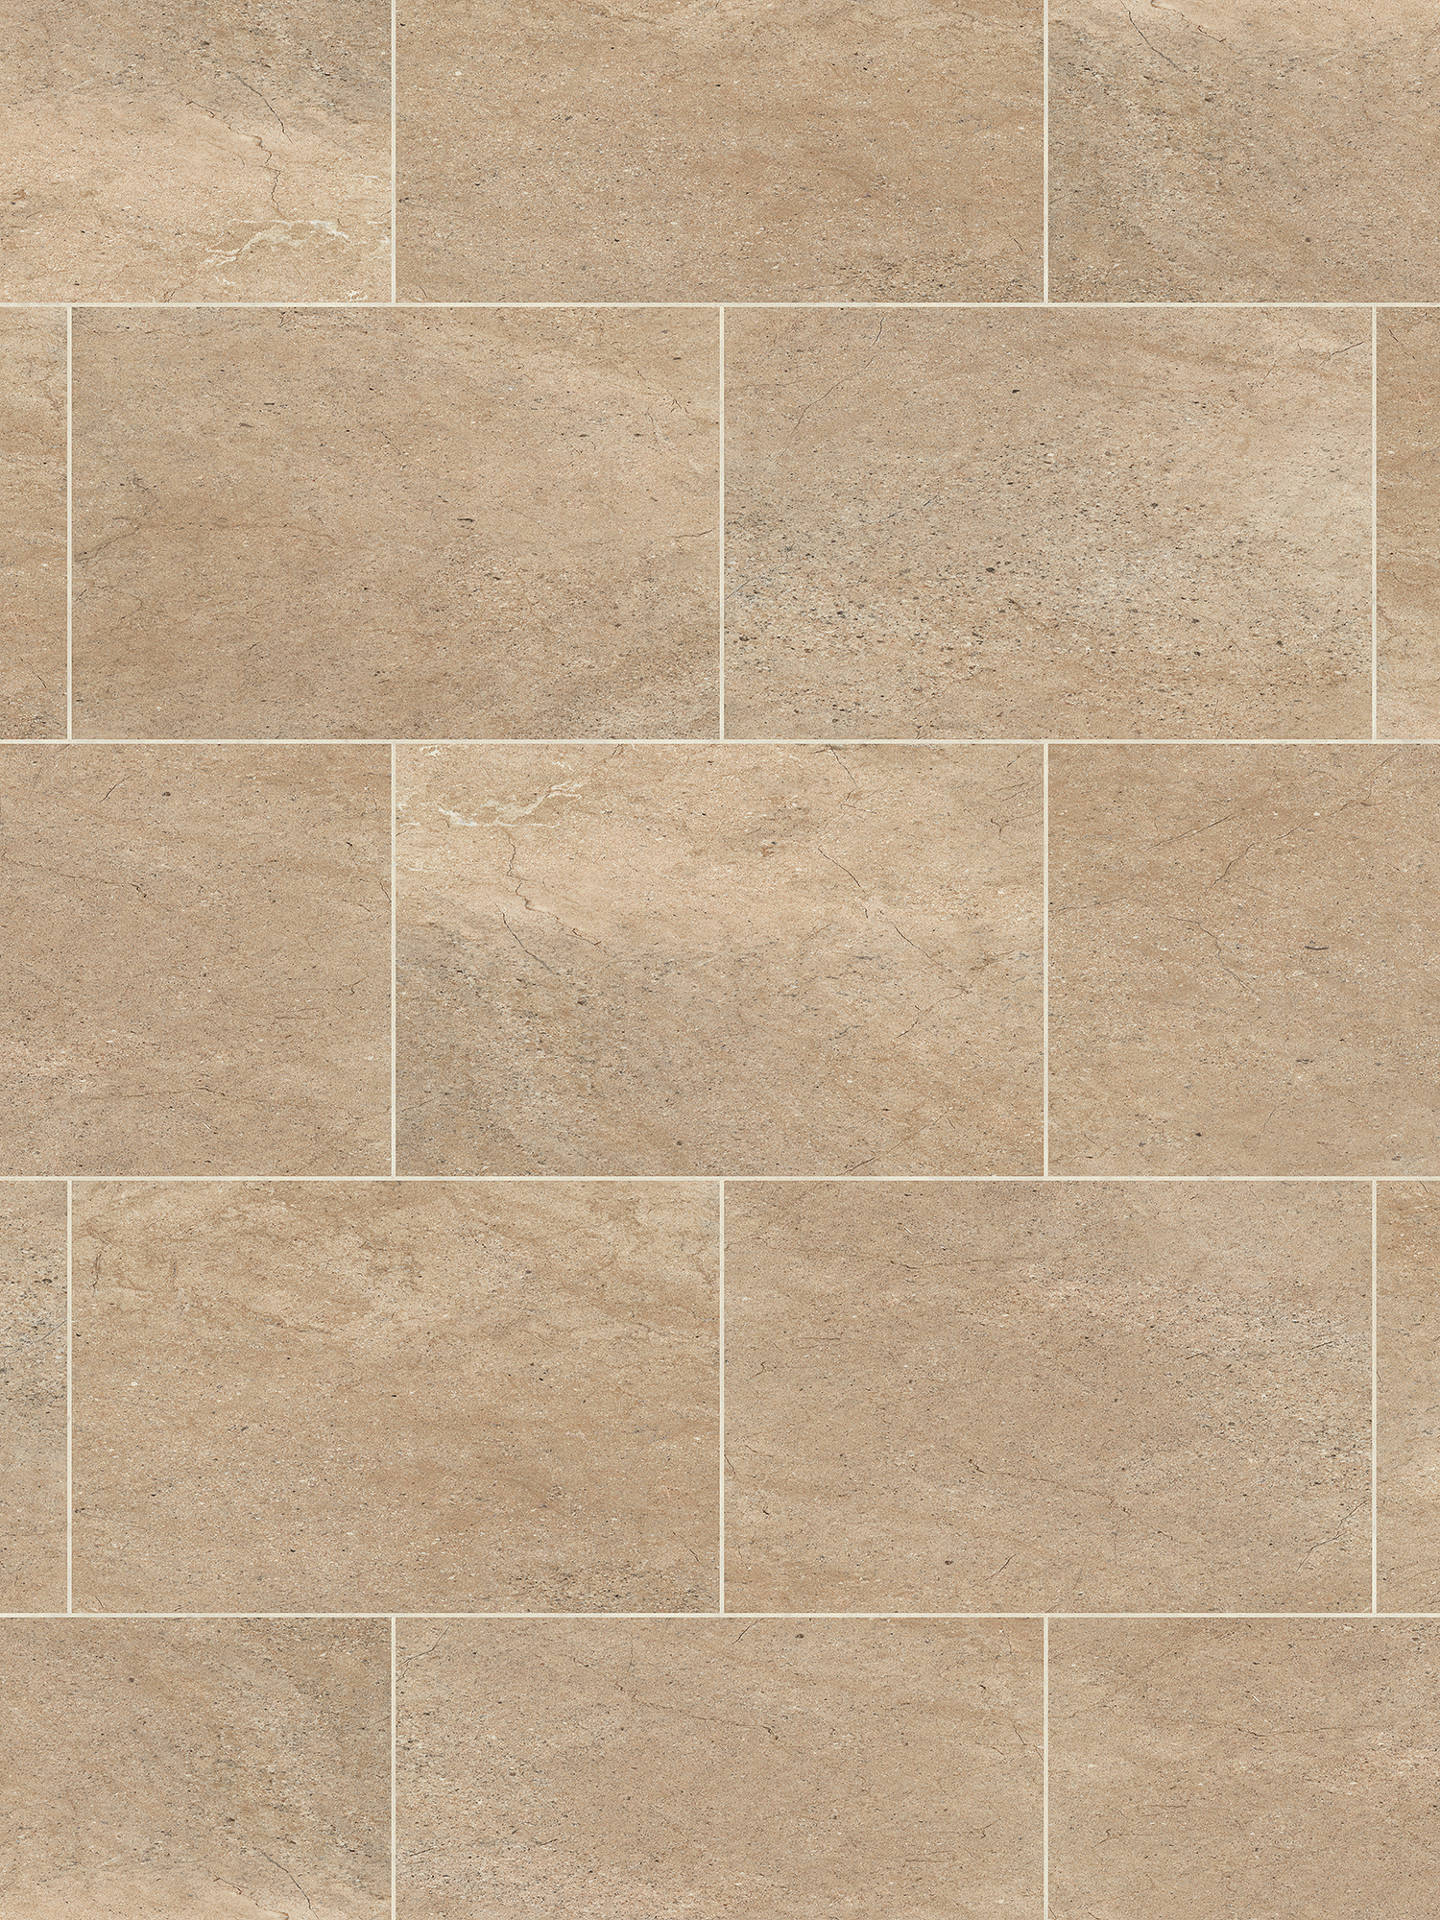 BuyKarndean Knight Tile Stone, 3.34m² Coverage, ST14 Bath Stone Online at johnlewis.com